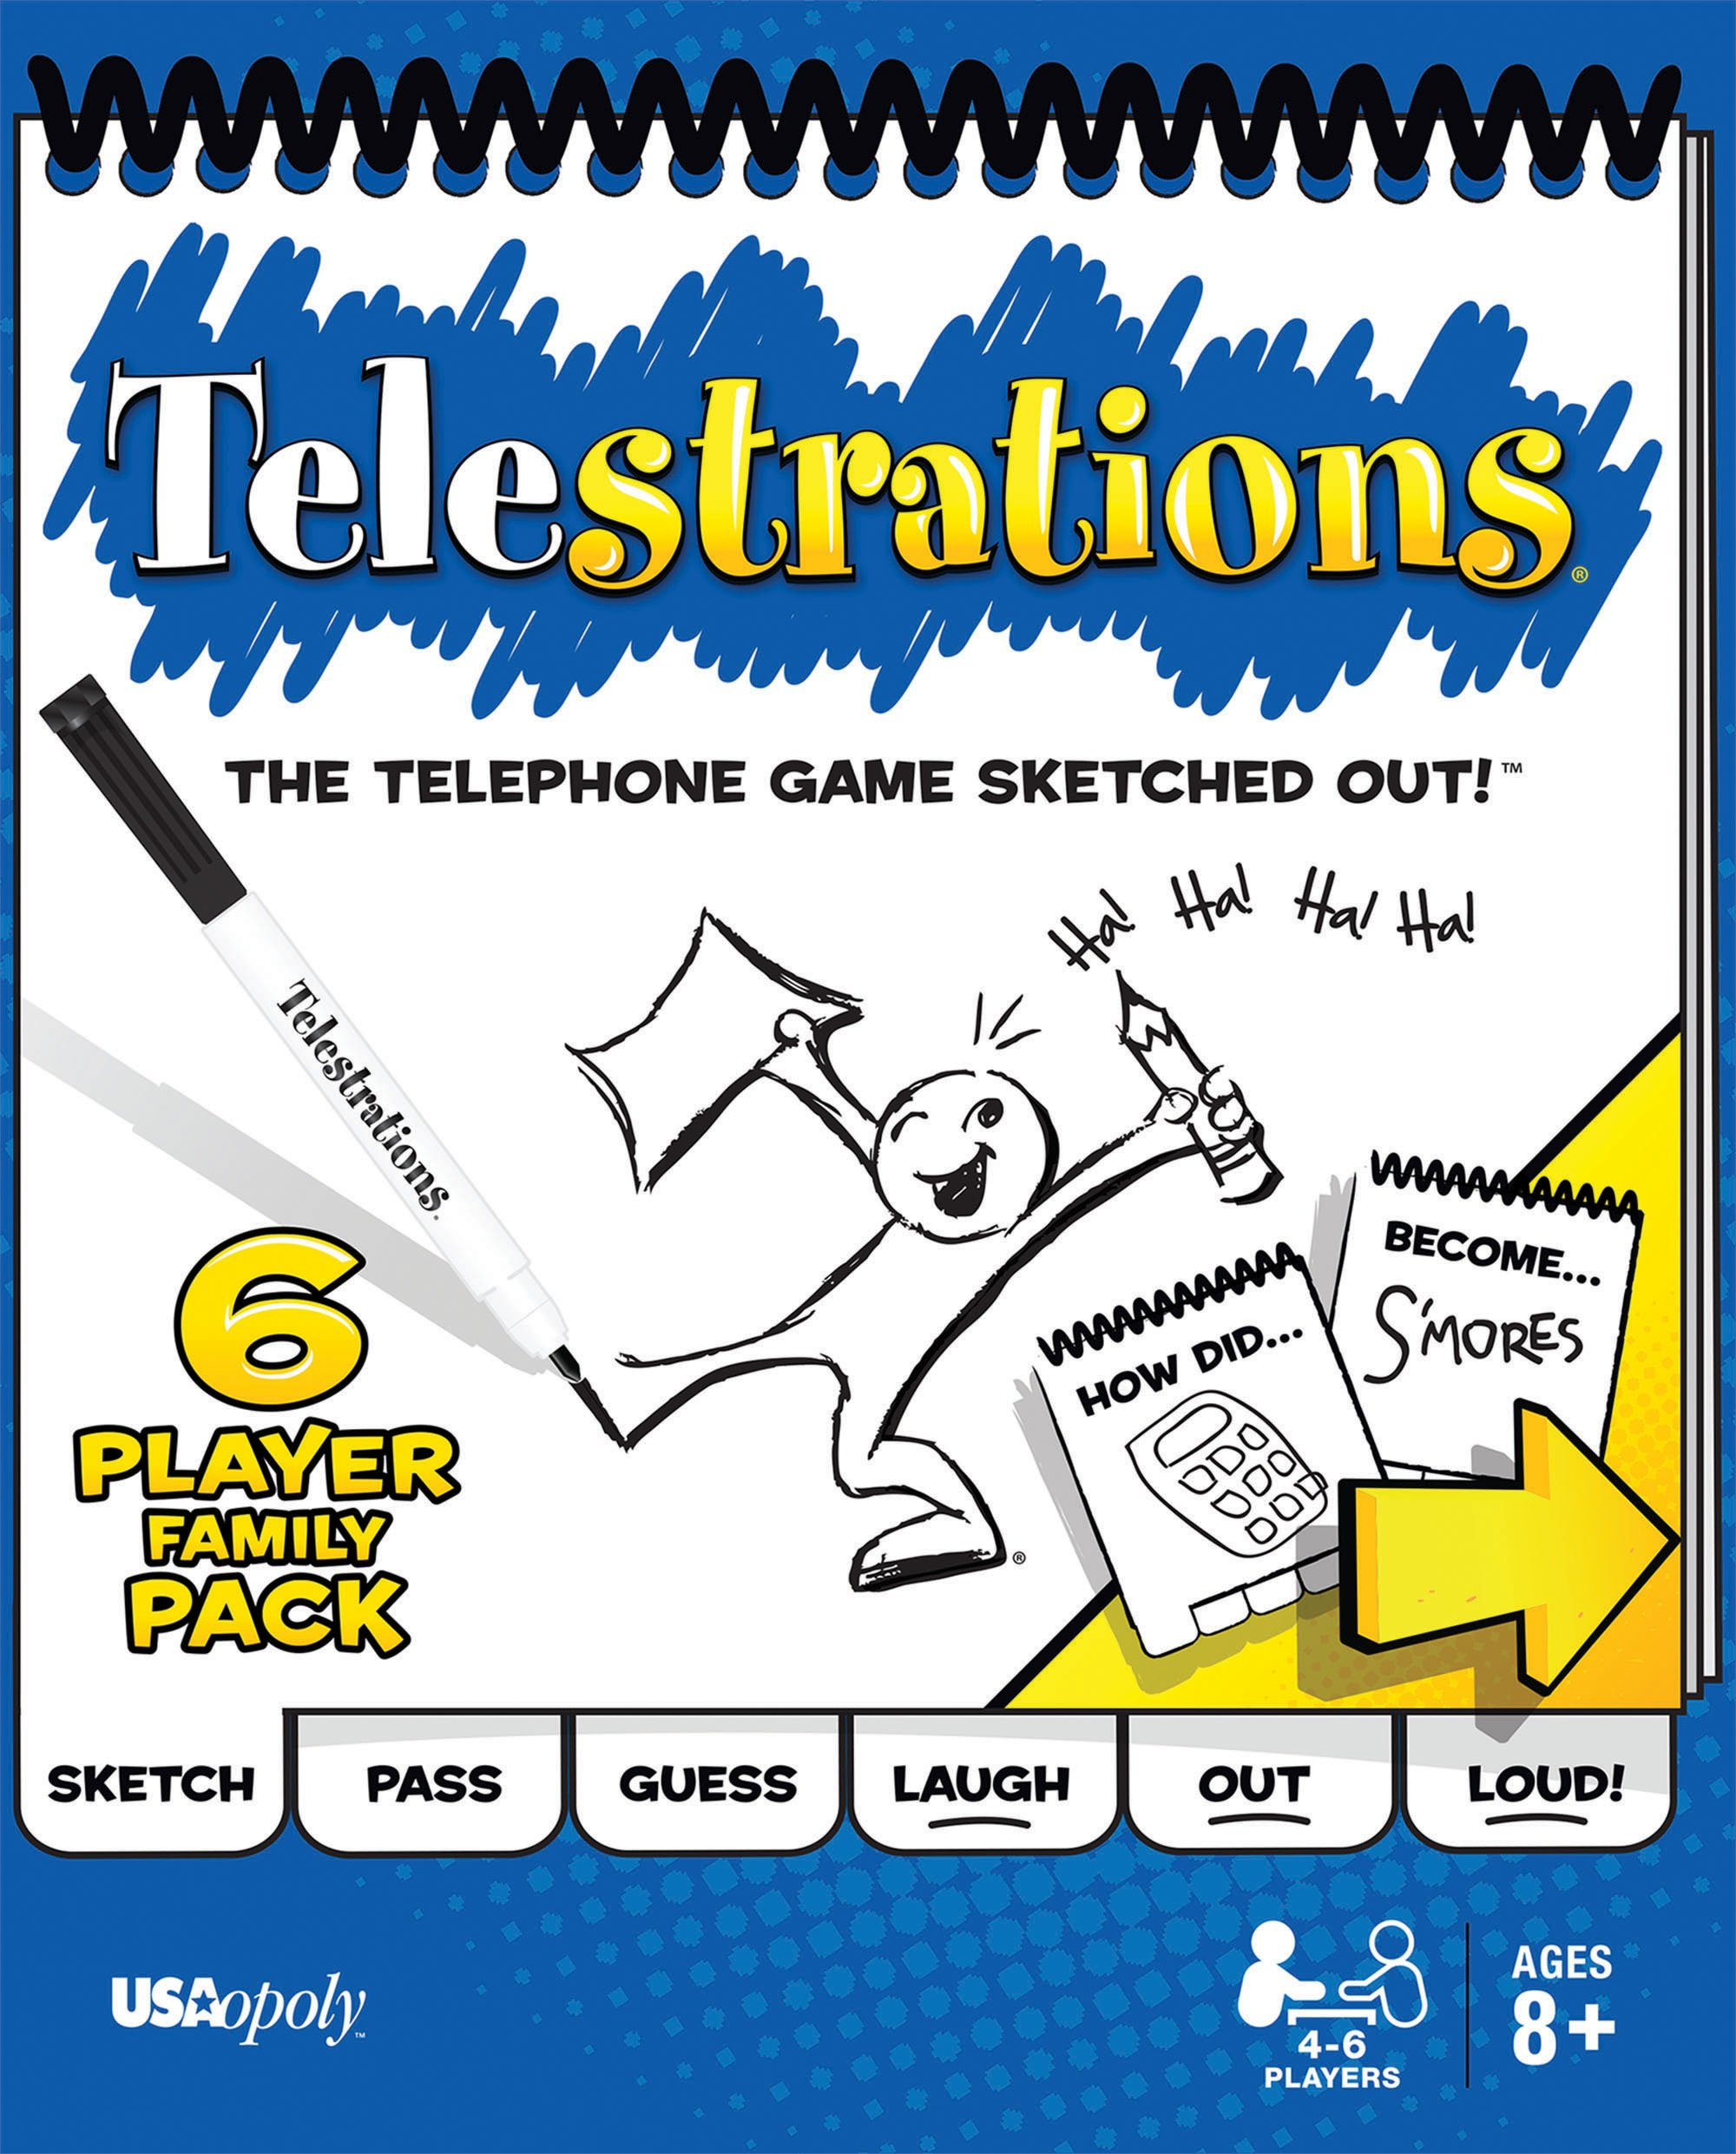 USAopoly Telestrations Original 6 Player Board Game | #1 LOL Party Game | Play with Your Friends & Family | Hilarious Game For All Ages | The Telephone Game Sketched Out